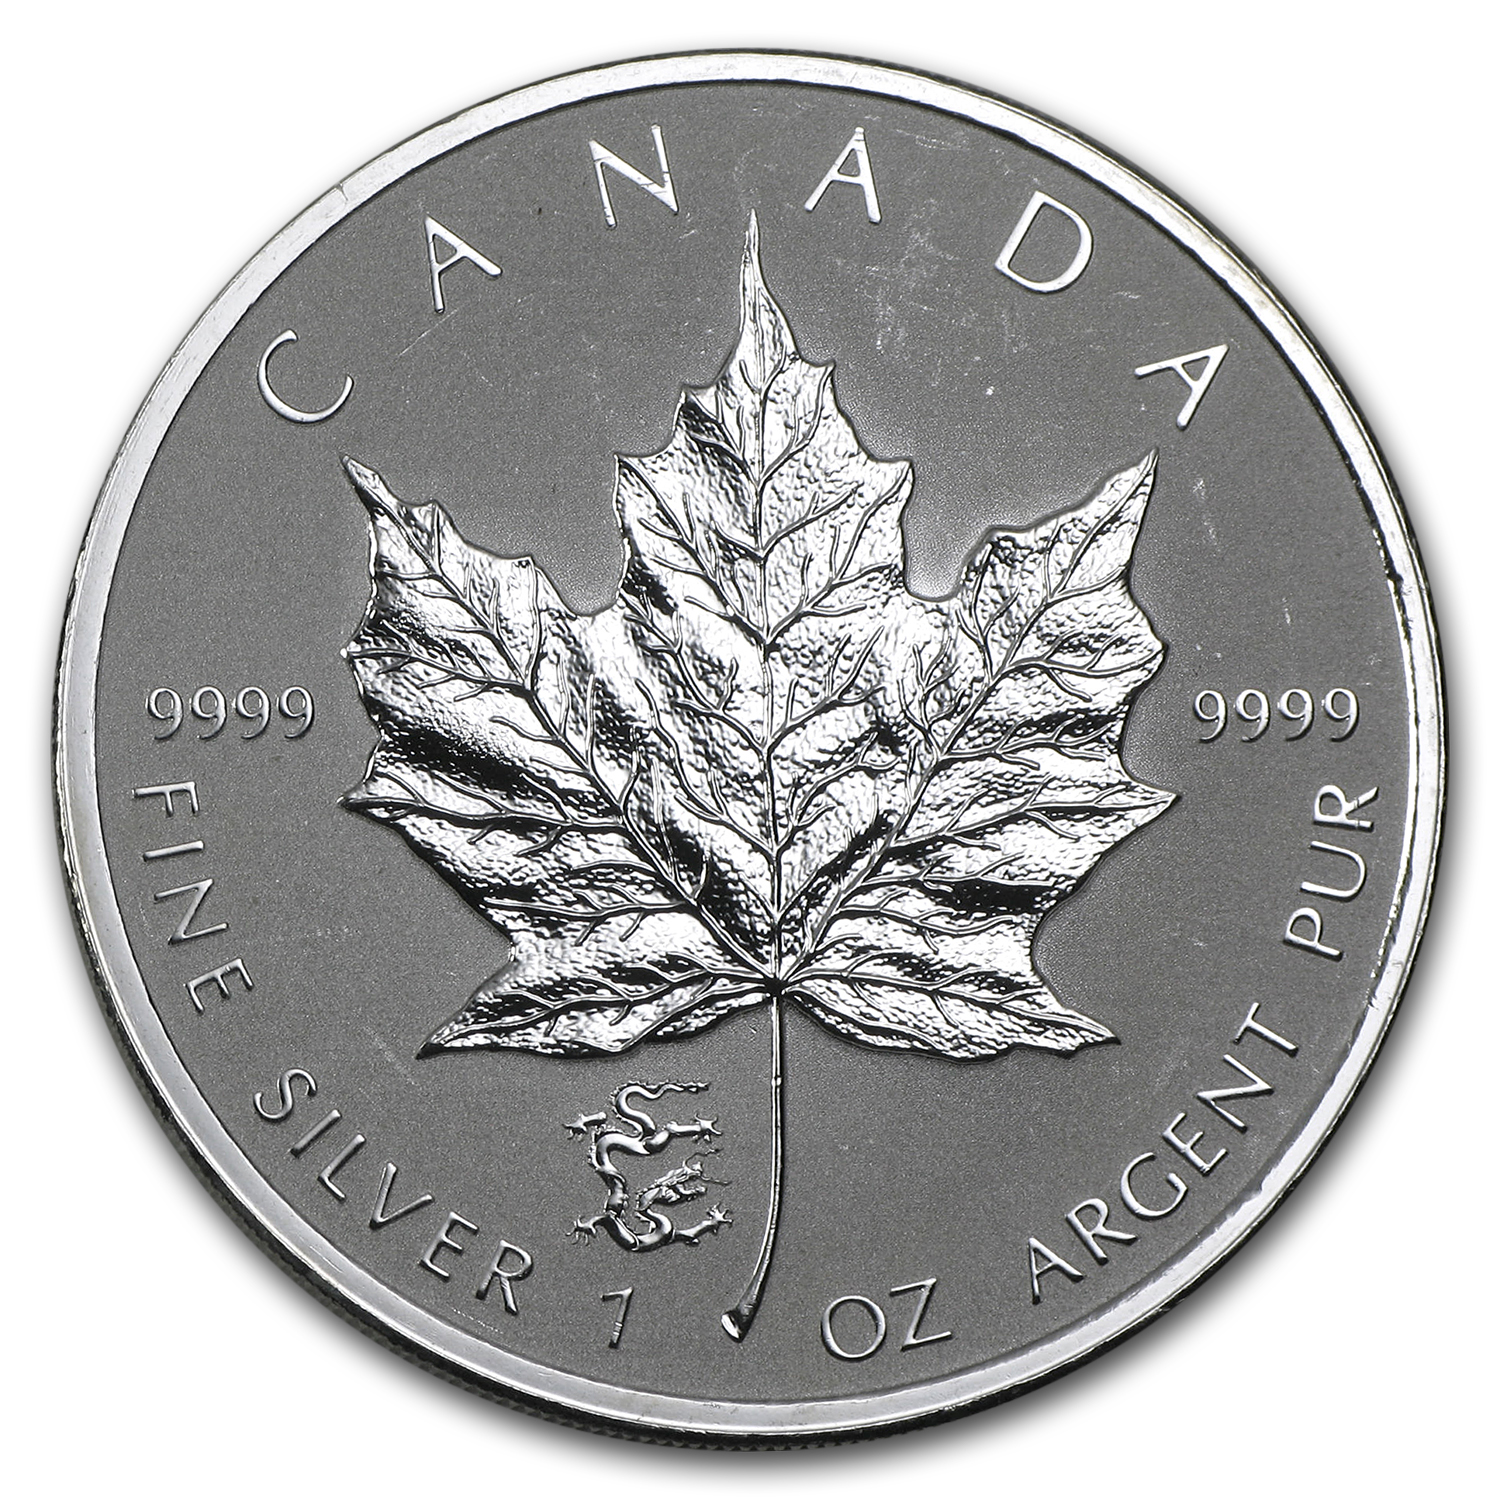 2012 Canada 1 oz Silver Maple Leaf Lunar Dragon Privy